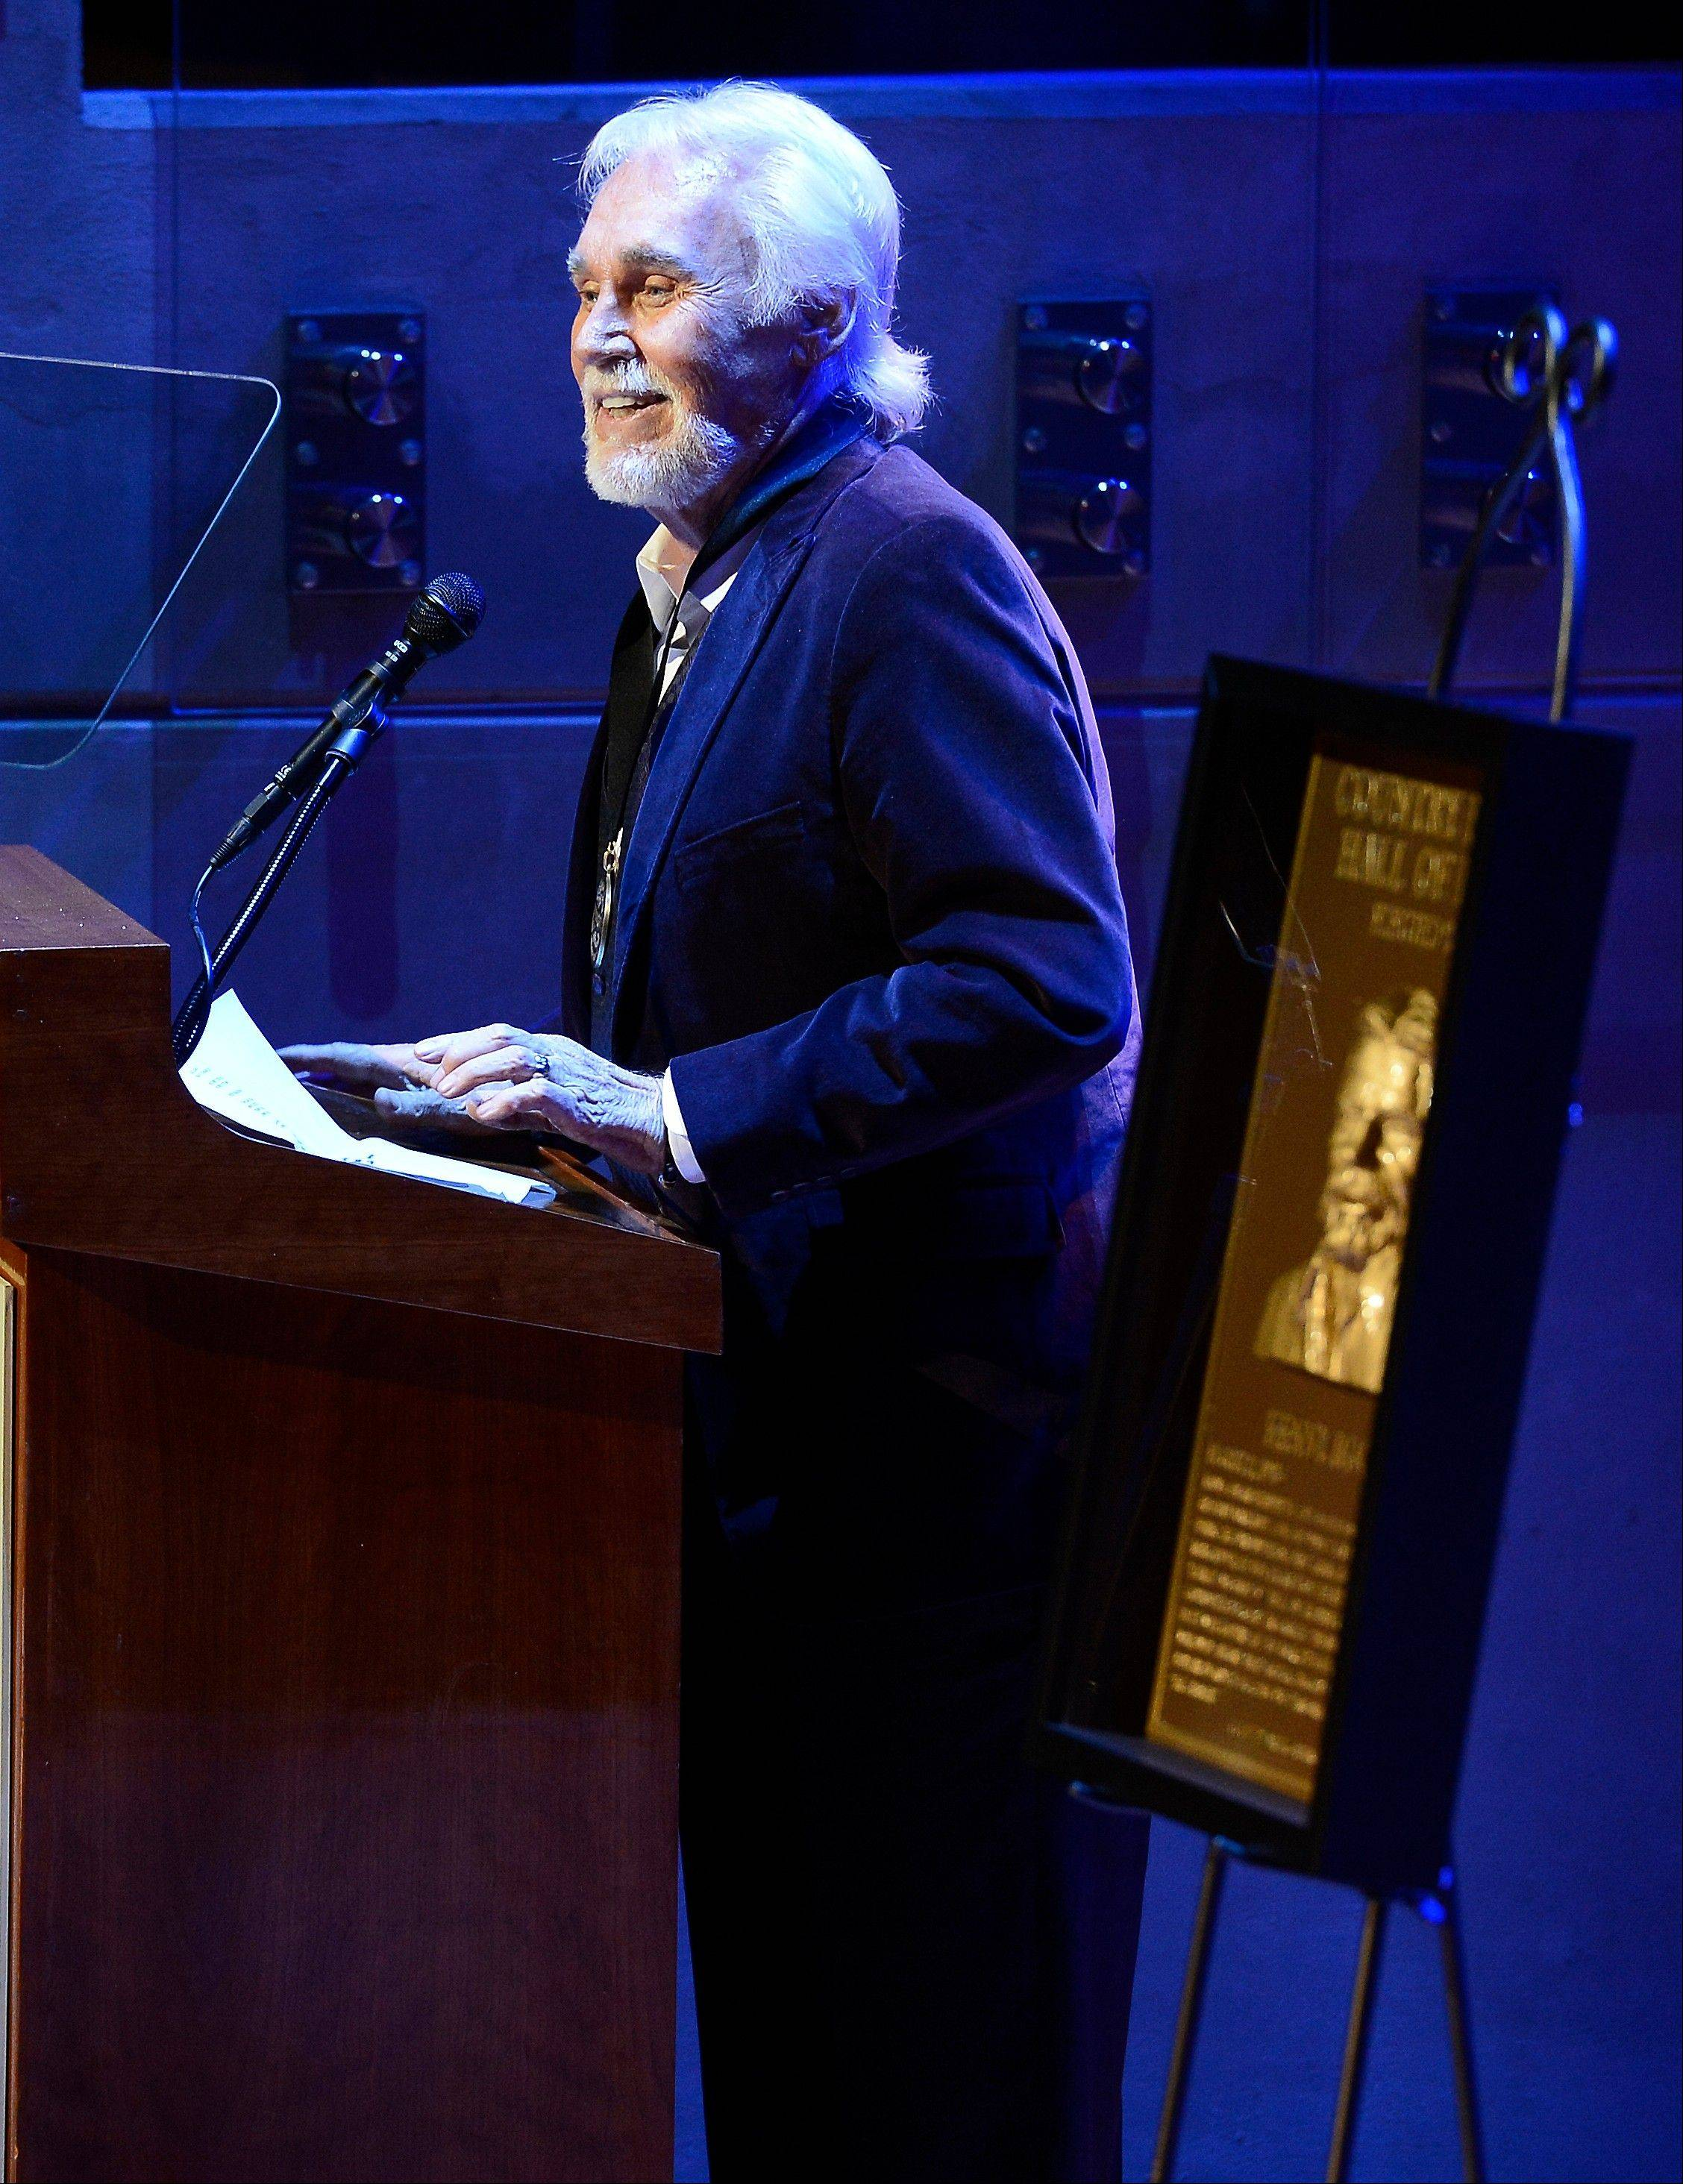 Country music star Kenny Rogers gives his acceptance speech at the ceremony for the 2013 inductions into the Country Music Hall of Fame on Sunday in Nashville, Tenn.